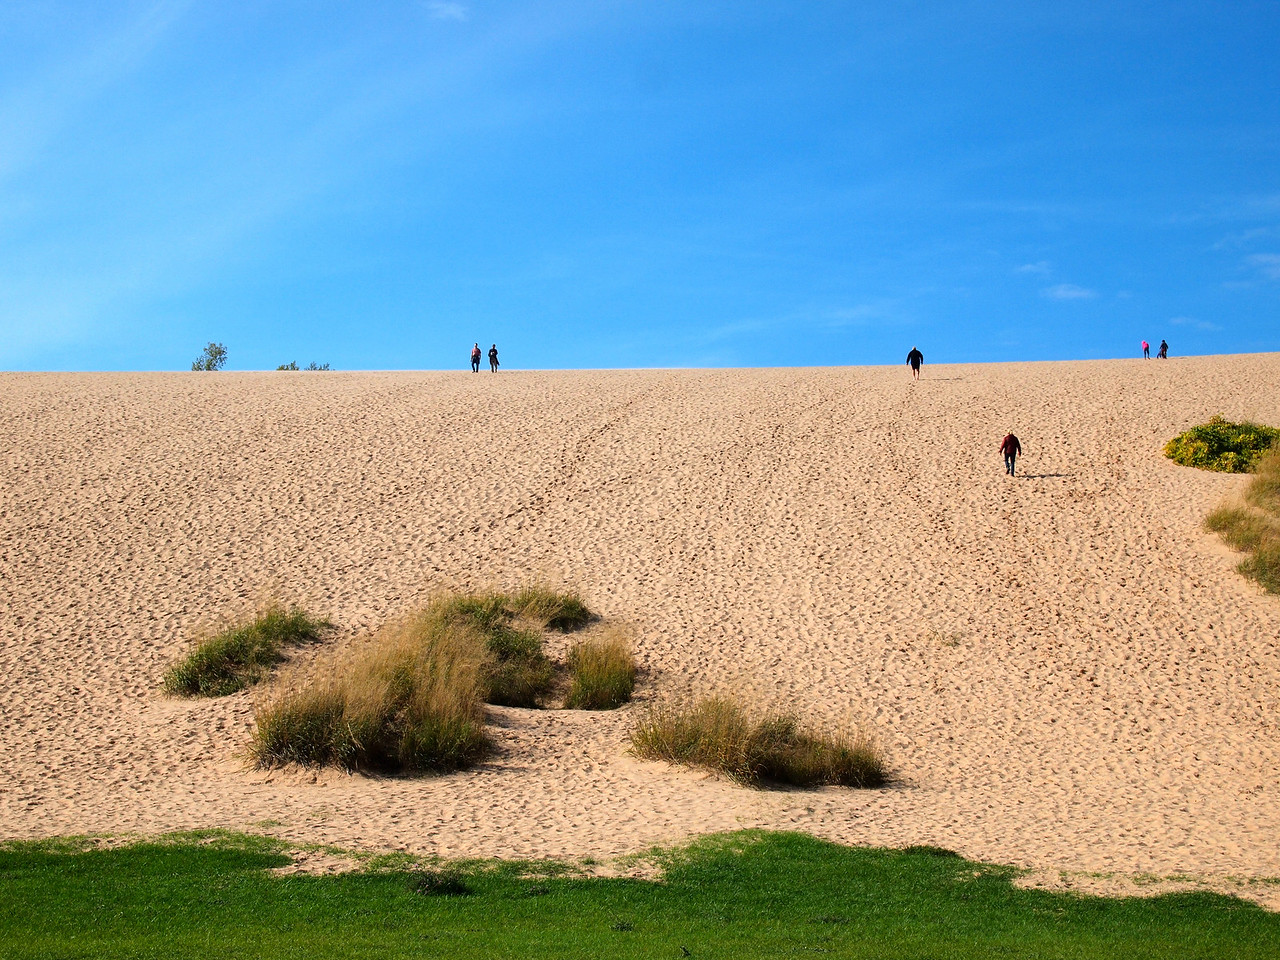 Dune Climb at Sleeping Bear Dunes